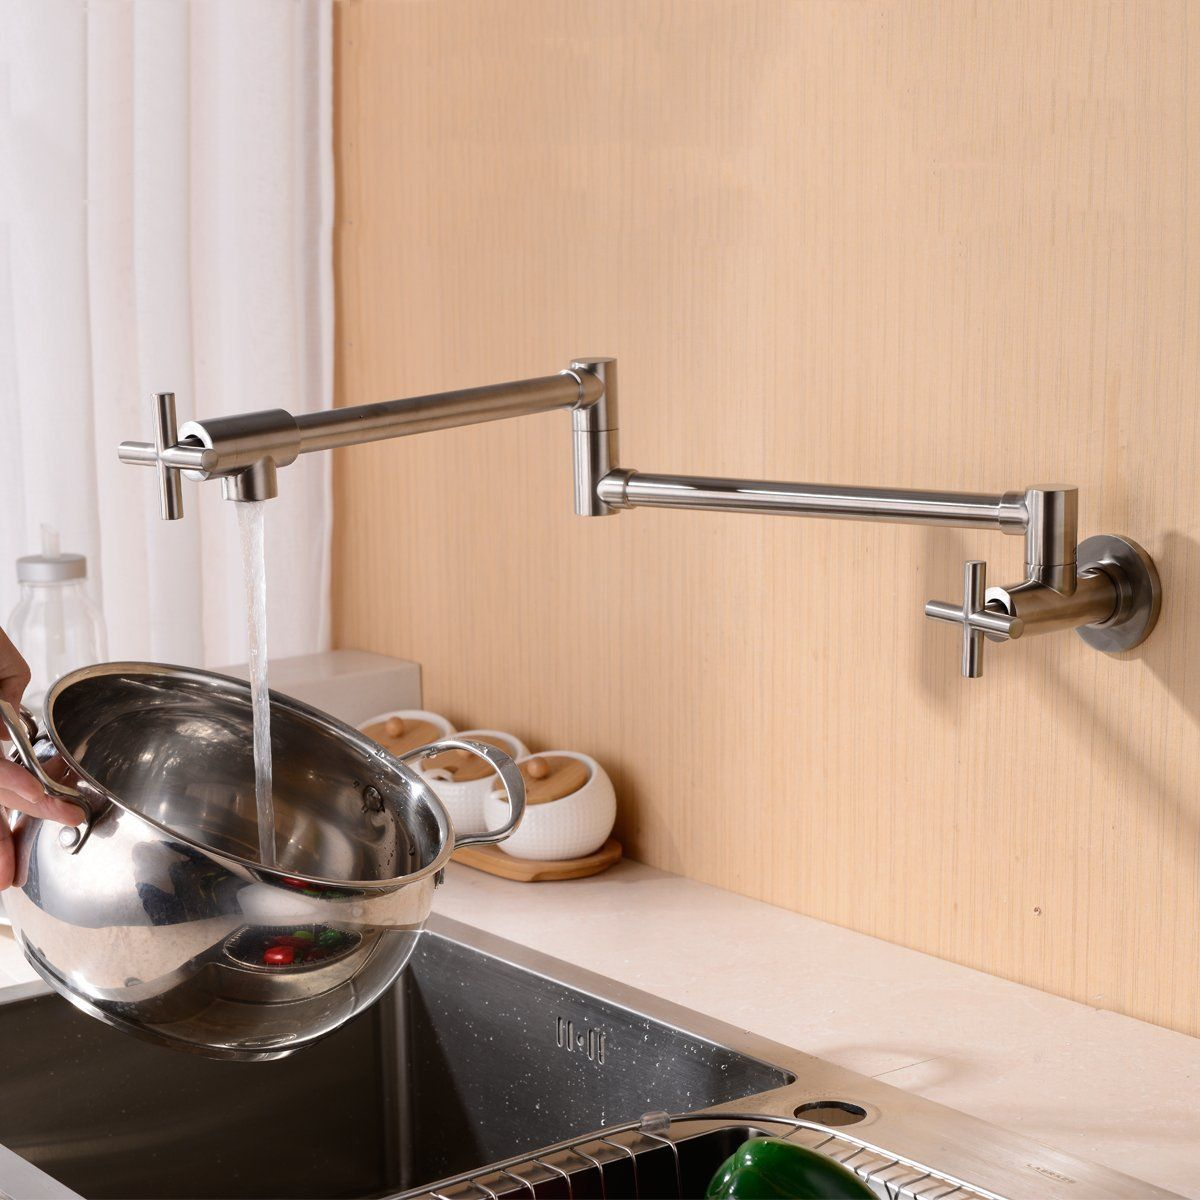 Lead Free Brass Construction Pot Filler Wall Mounted Kitchen Sink Faucet With Double Joint Swing Arm Single Col Kitchen Sink Faucets Pot Filler Kitchen Faucet